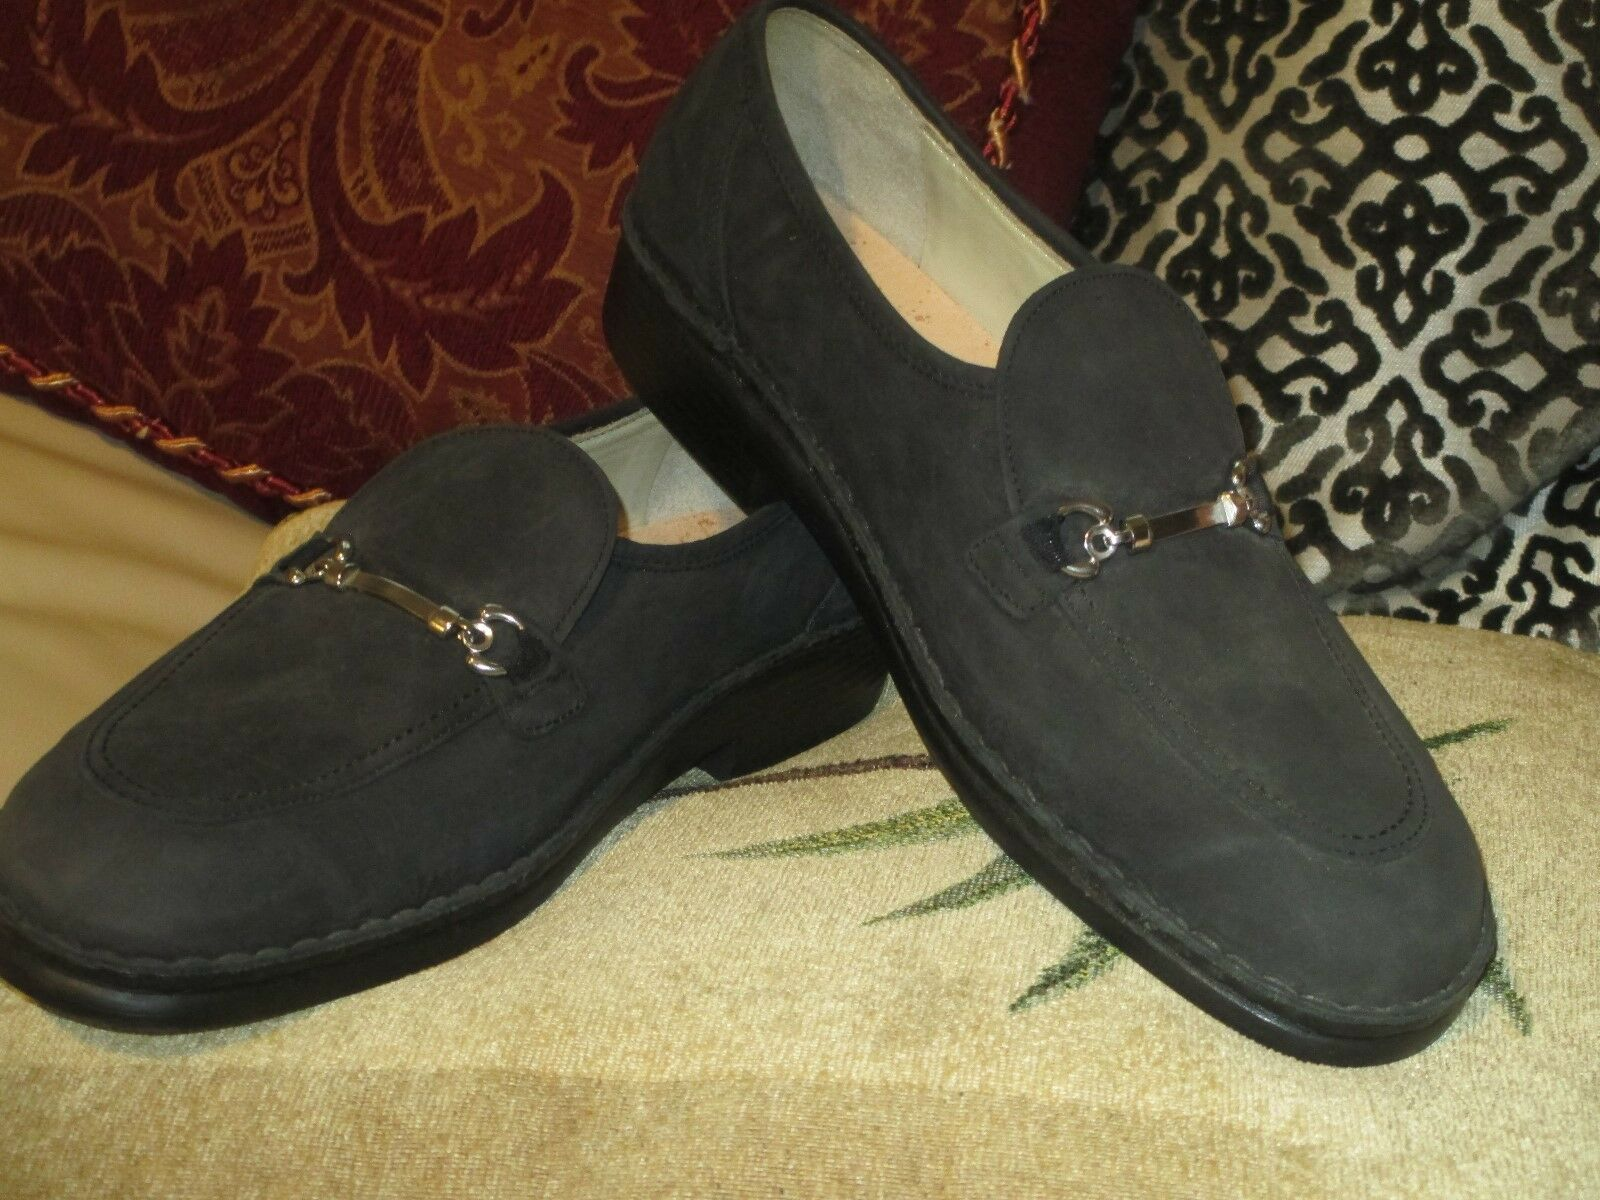 NEW FINN COMFORT BROWN LEATHER LOAFERS SIZE 7.5 MADE IN GERMANY